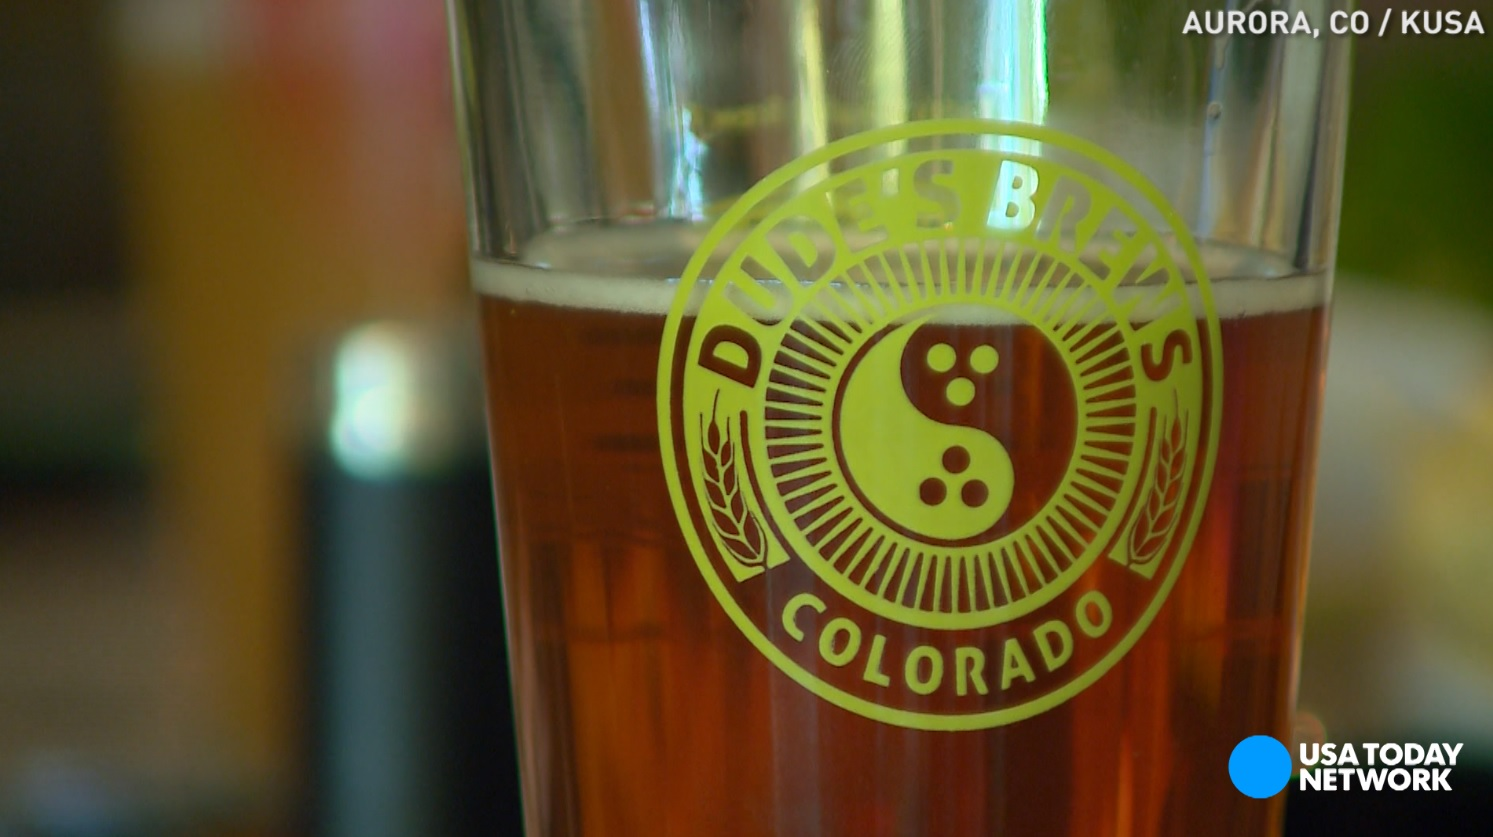 Cannabis beer is now a real drink